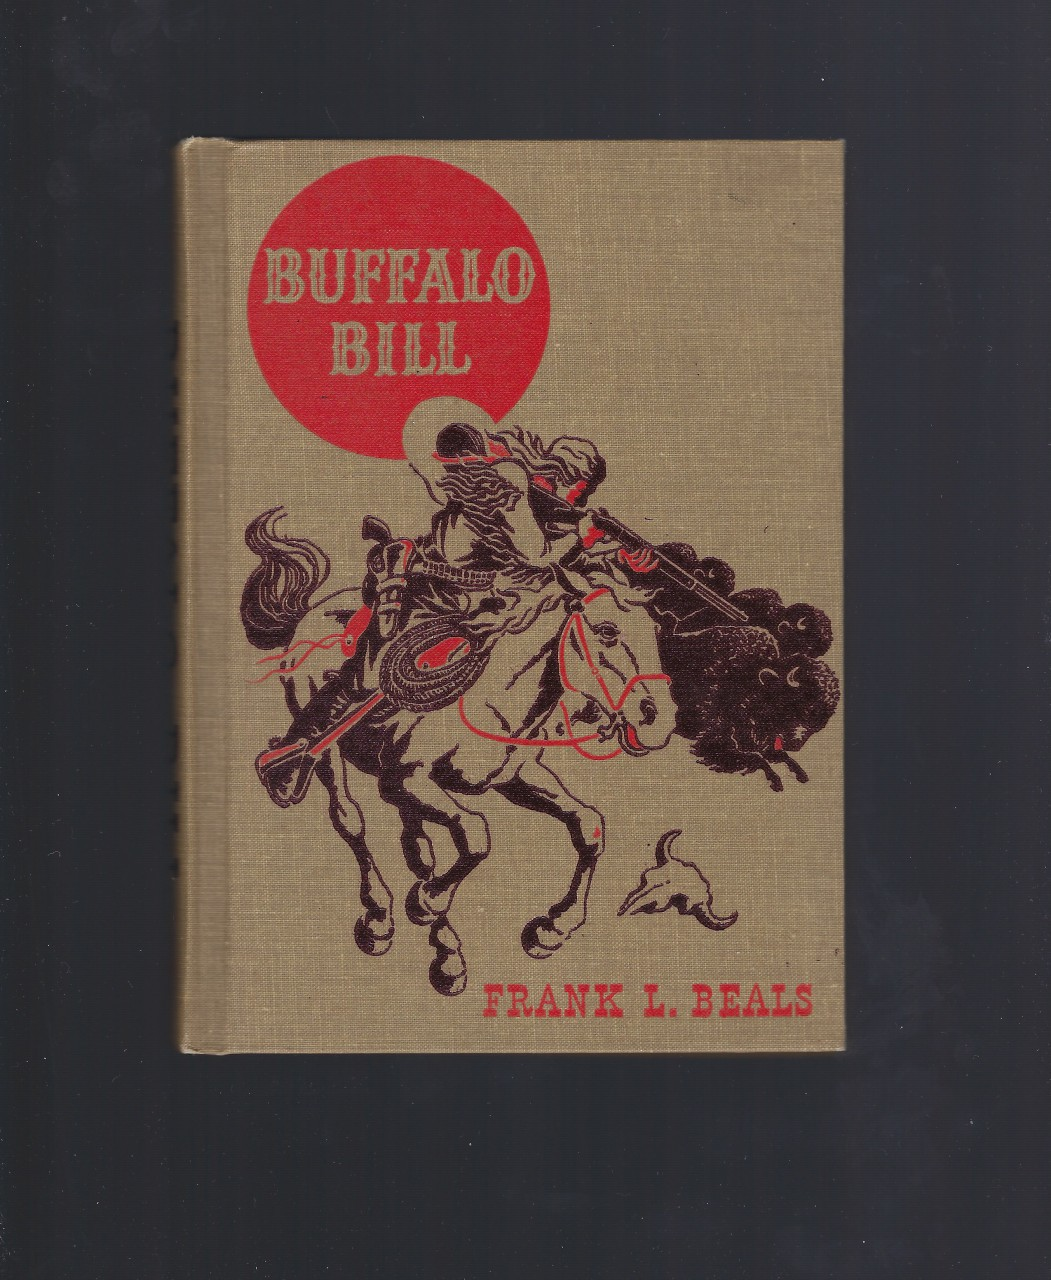 Buffalo Bill (The American Adventure Series) 1943, Frank Lee Beals; Jack Merryweather [Illustrator]